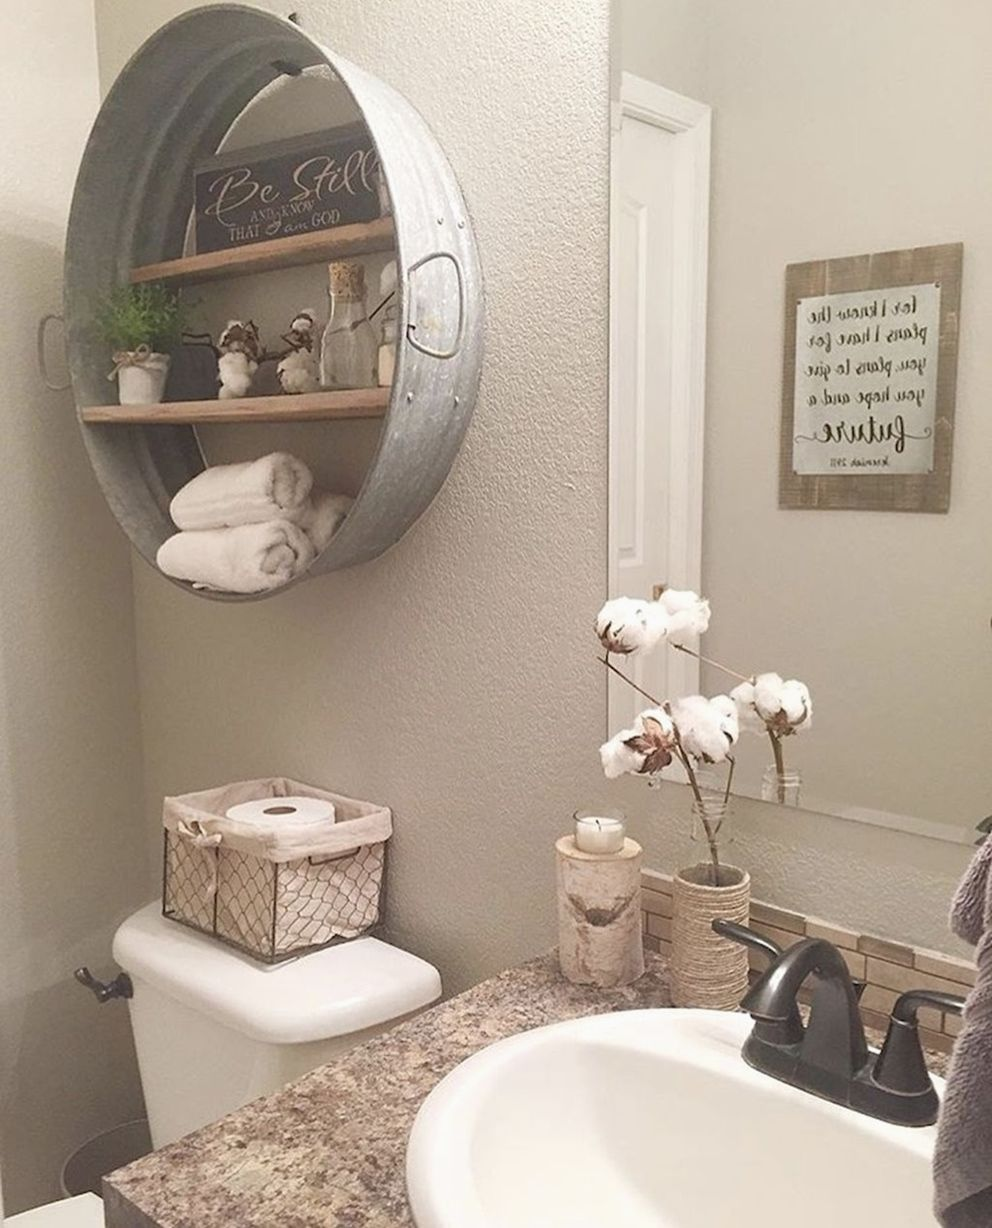 Remodeling Bathroom Do I Need Permit Farmhouse Bathroom Decor Easy Home Decor Bathroom Remodel Master